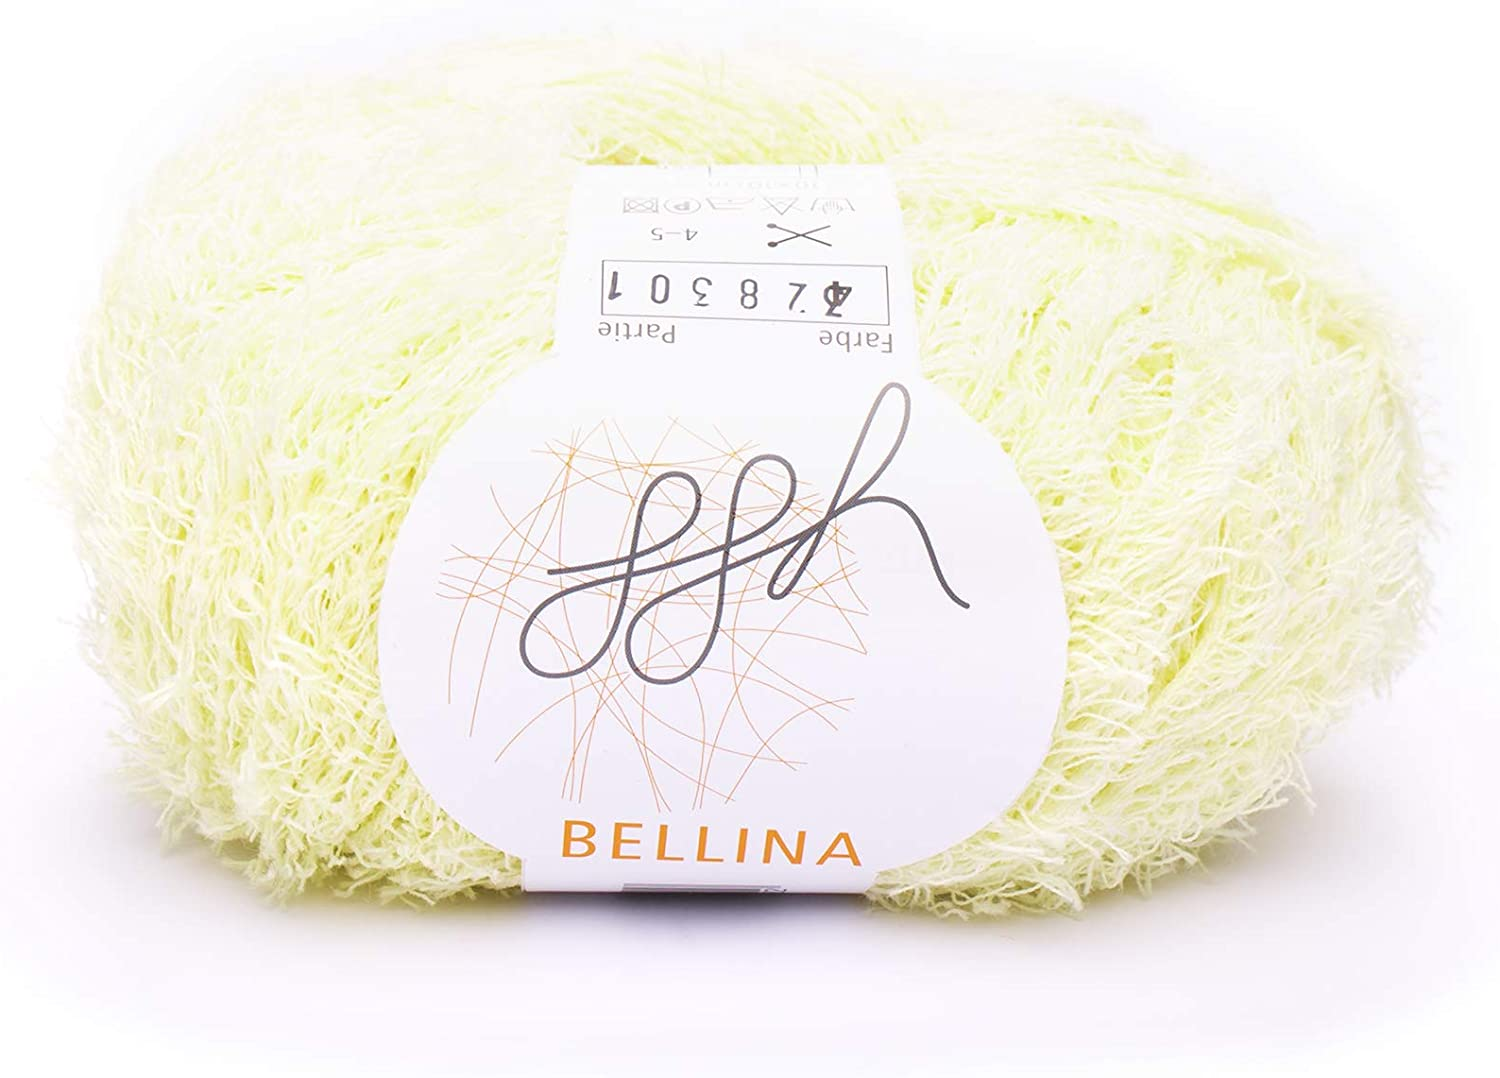 ggh Bellina   32   Light Yellow   Cotton for Knitting and Crocheting